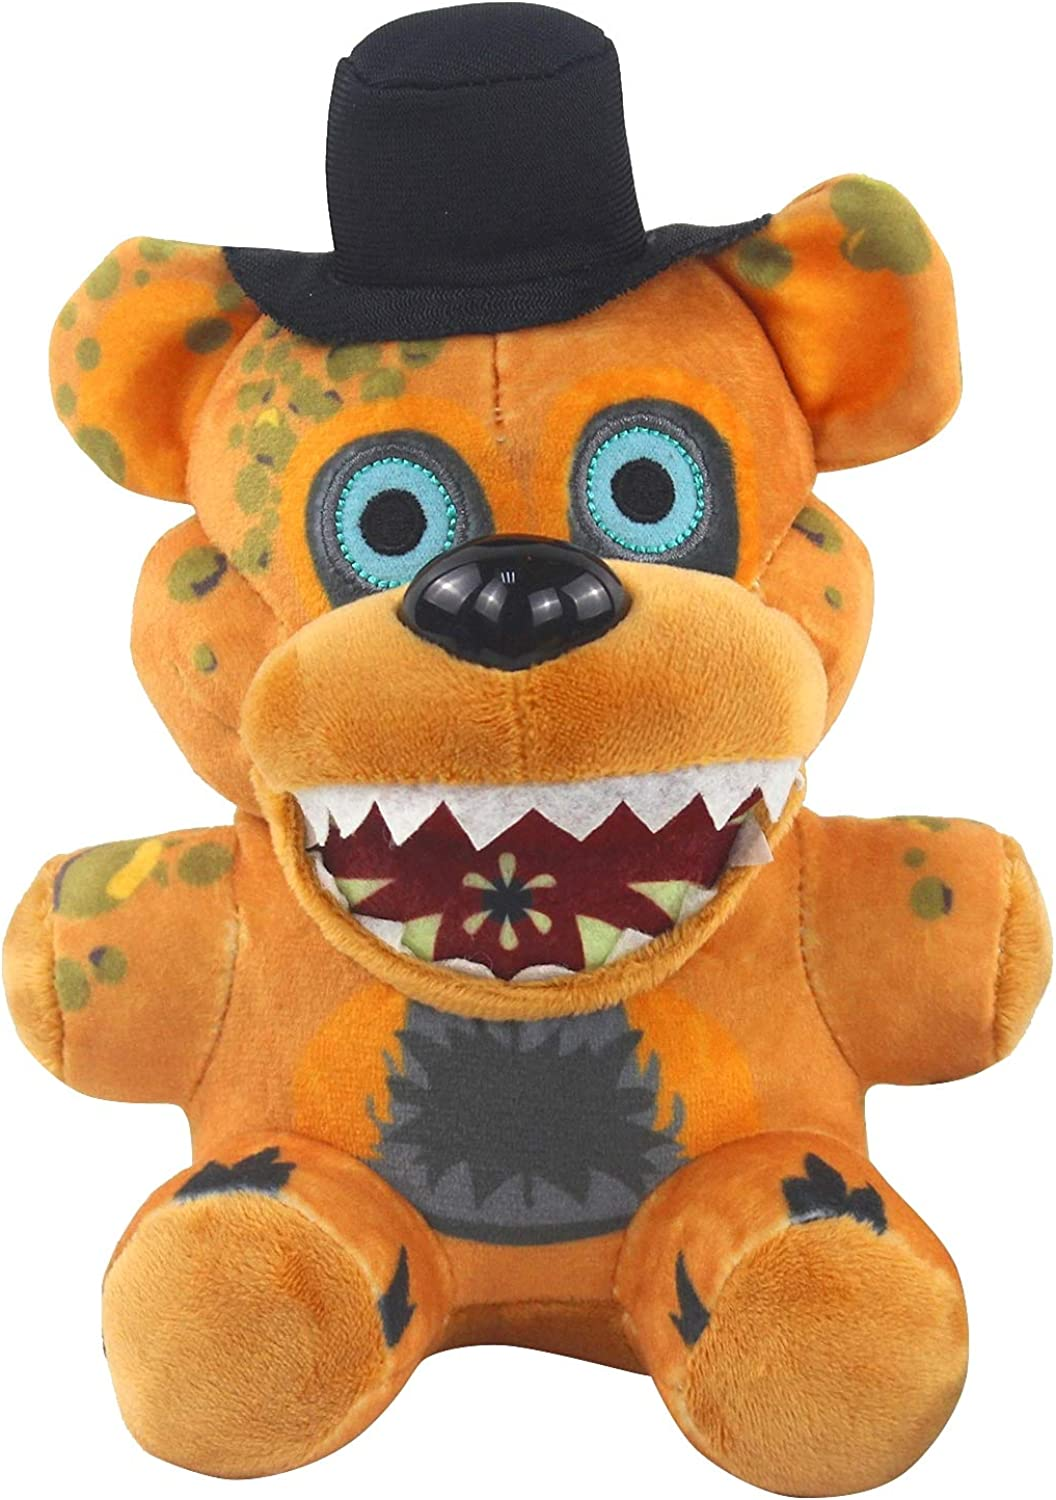 7 Pulgadas Five Nights at Freddy's Foxy Plush,Muñeco de Peluche Cinco Noches en Juguetes de Peluche de Freddy, Freddy Bear Funtime Foxy Chica Bonnie, Muñecas para fanáticos de FNAF Regalos para niños